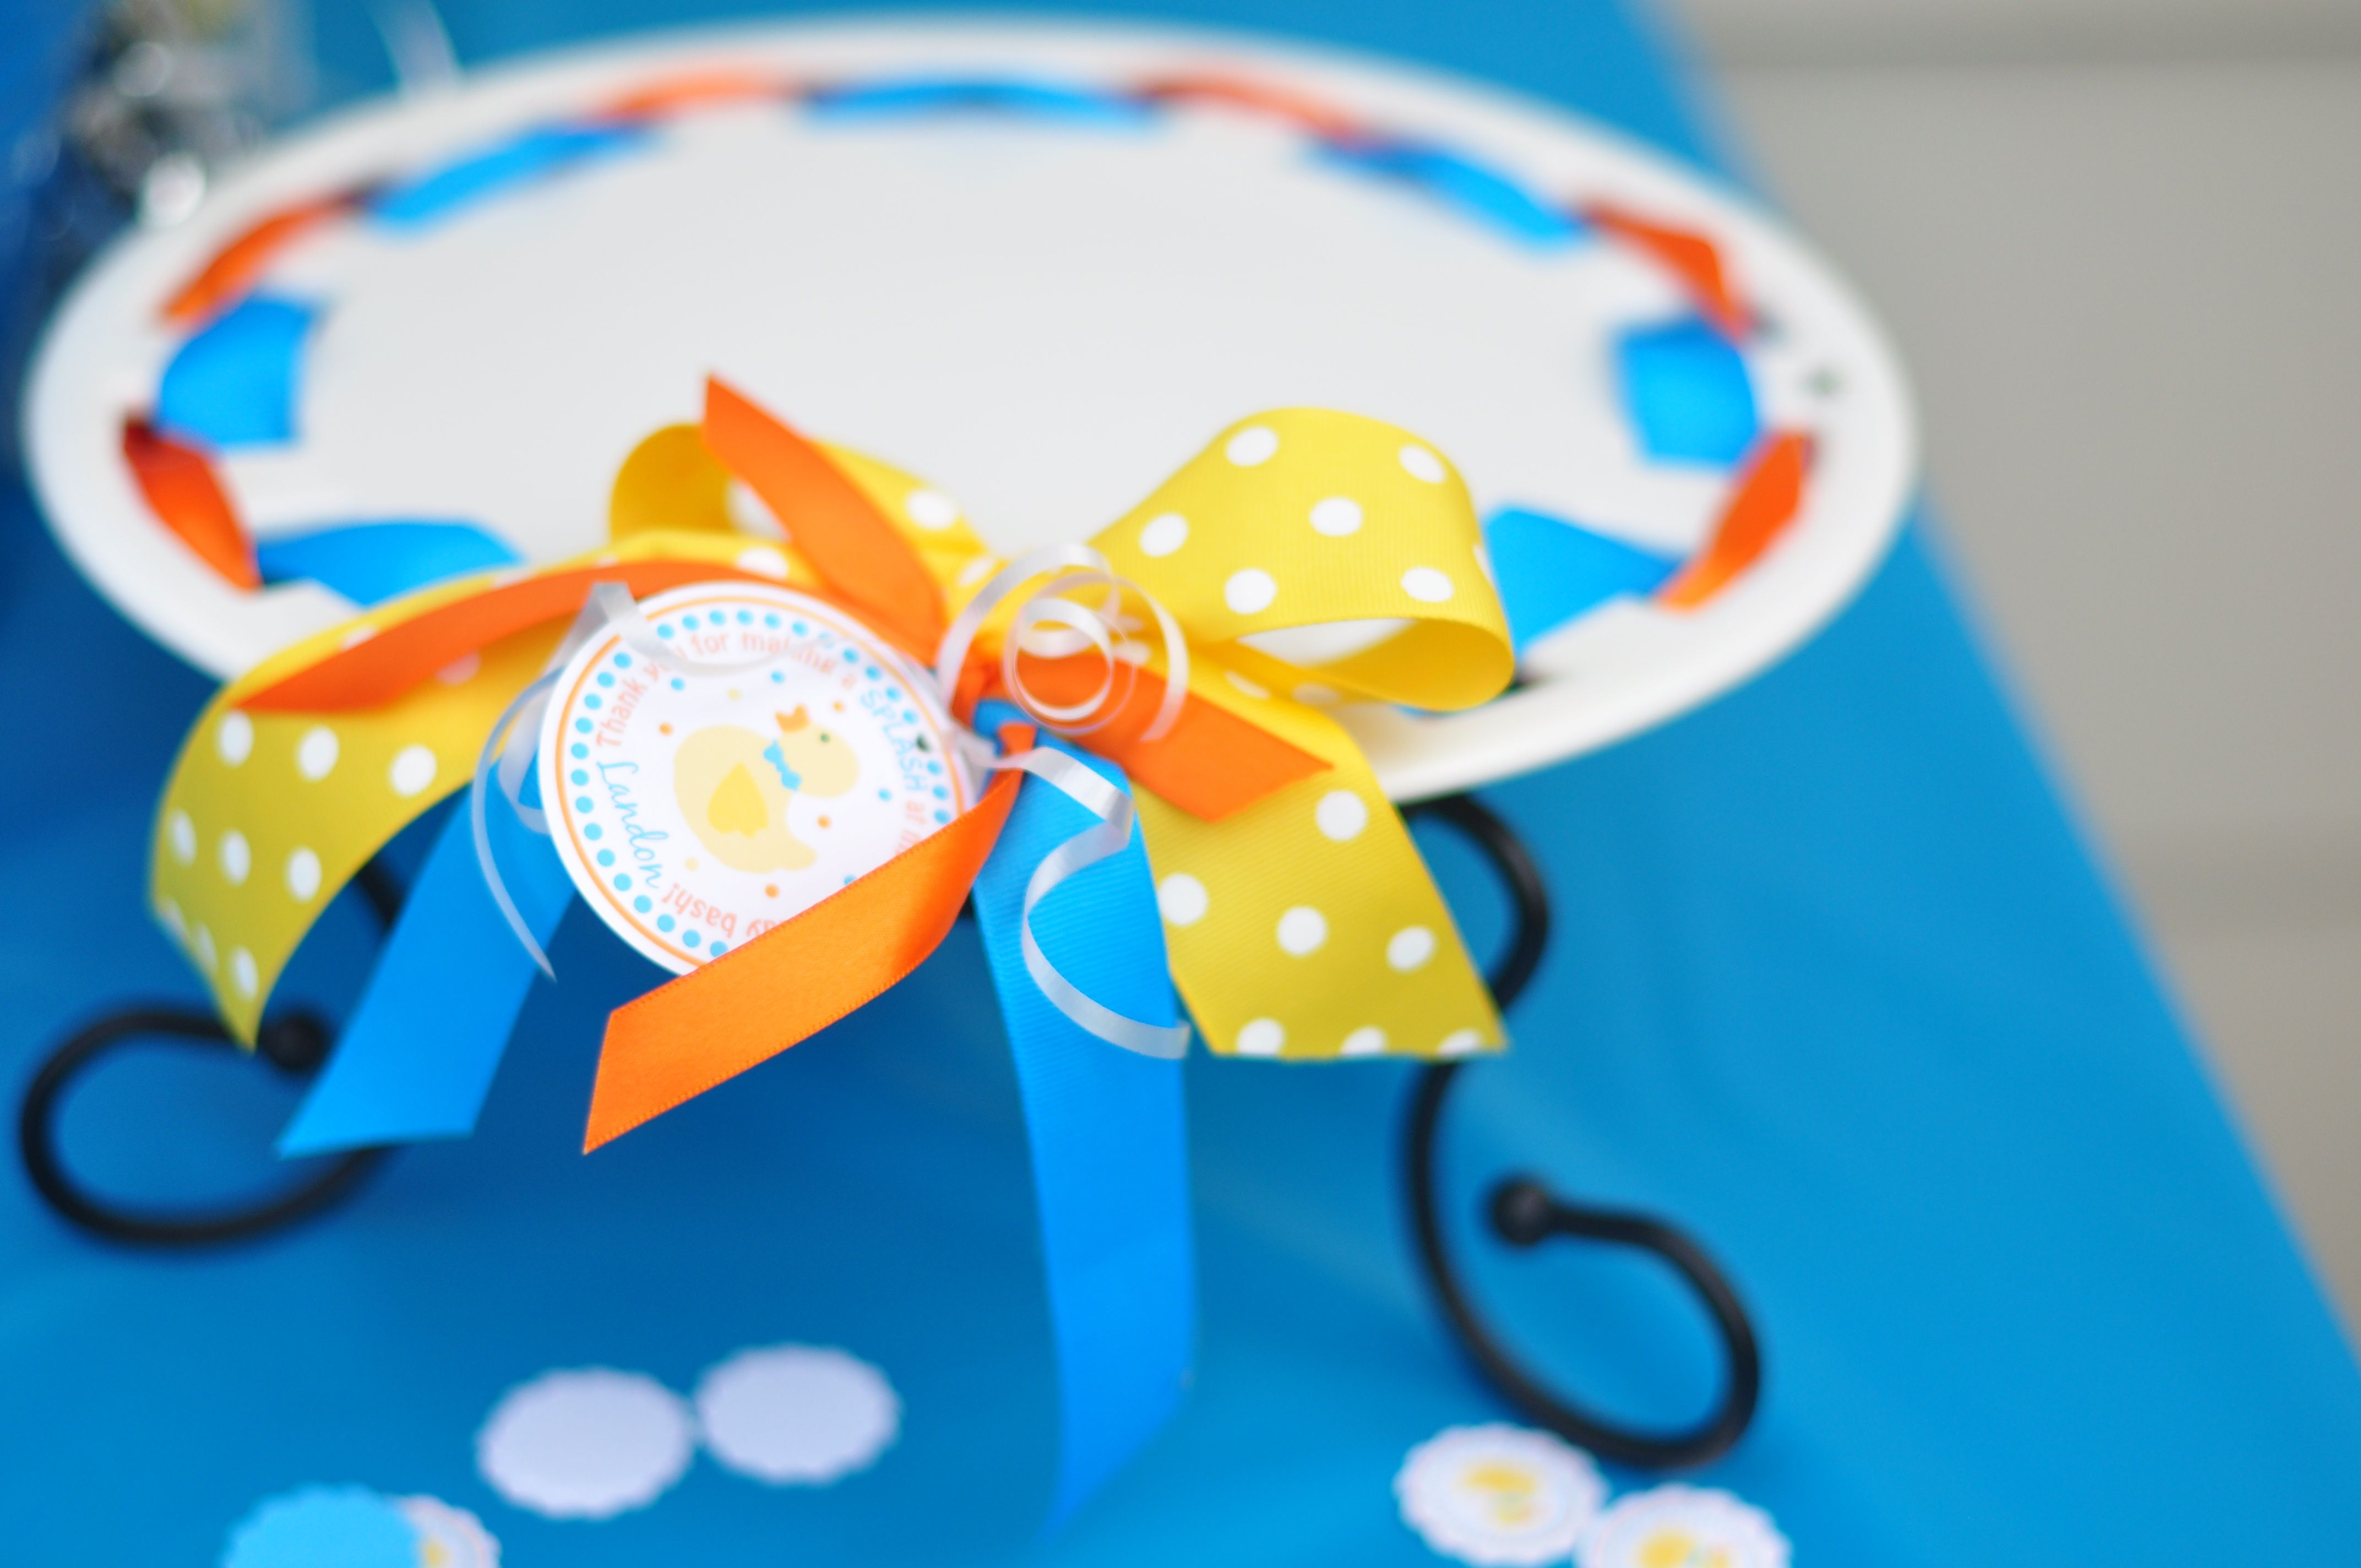 Ribbon to match your themes gives the extra little touch to make everything stand out just a little more!